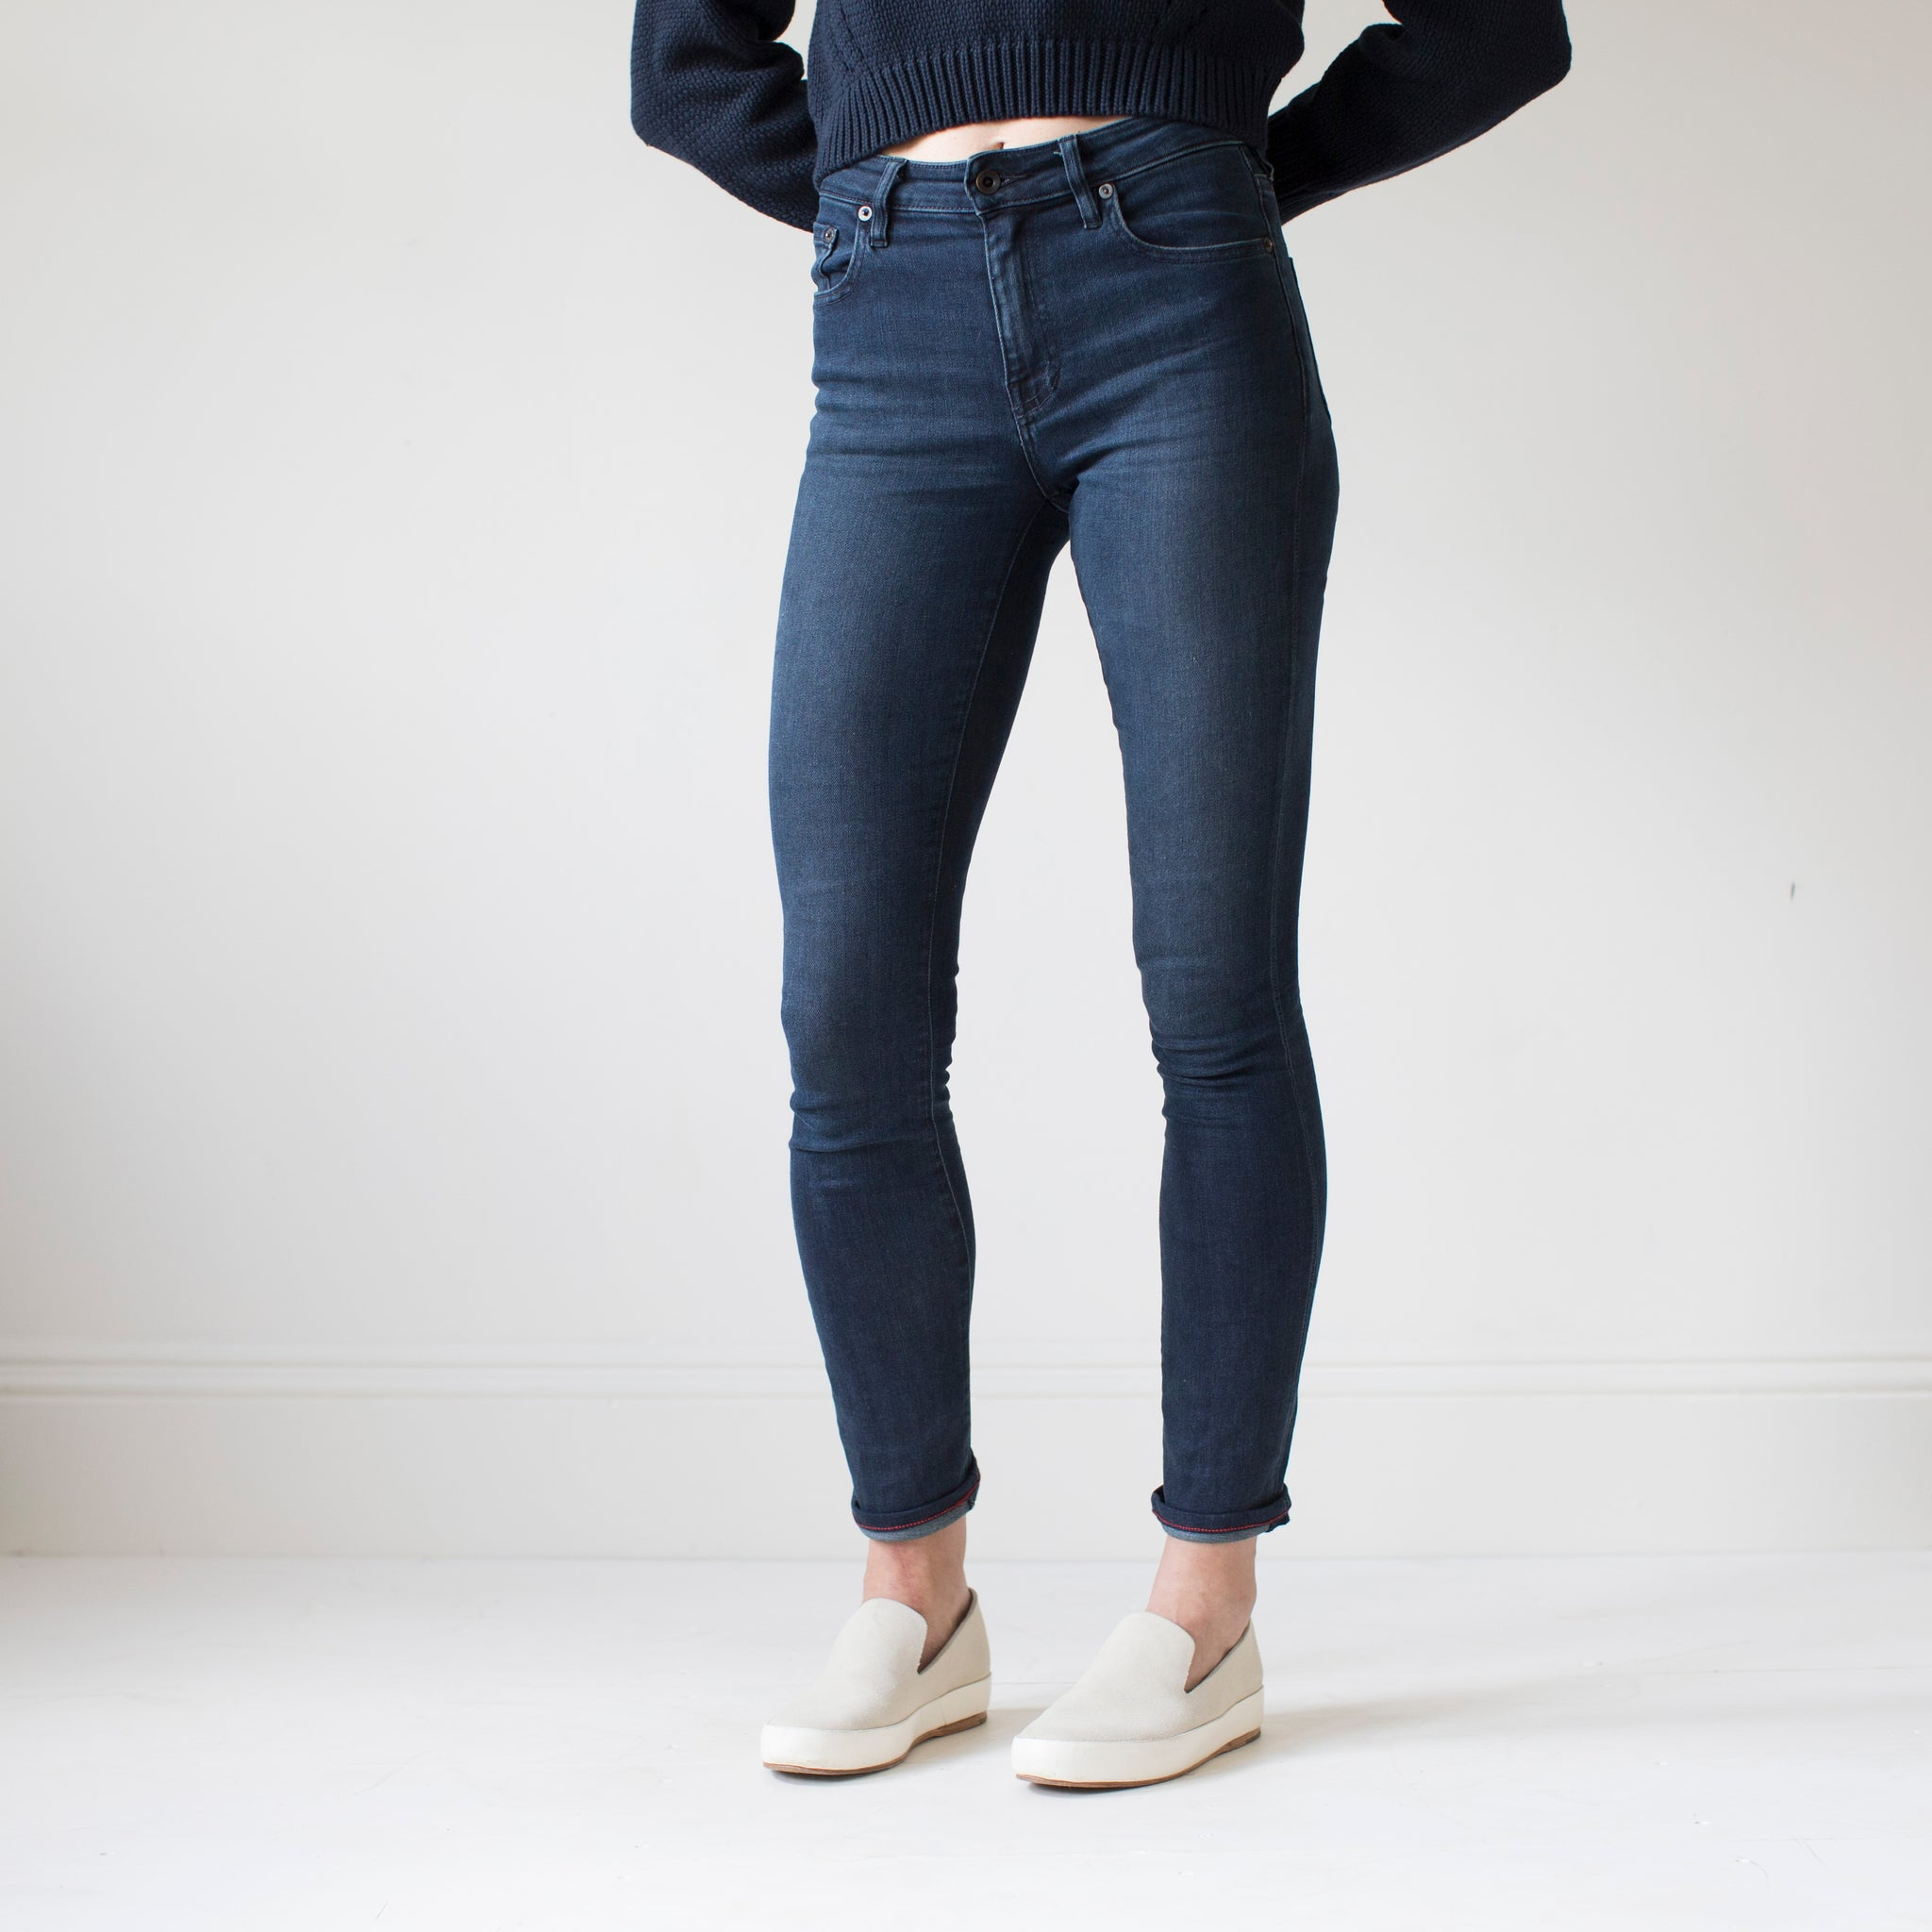 angle hover: canon  A model wears Raleigh Denim Workshop Haywood high-rise skinny jeans with a dark wash, side view